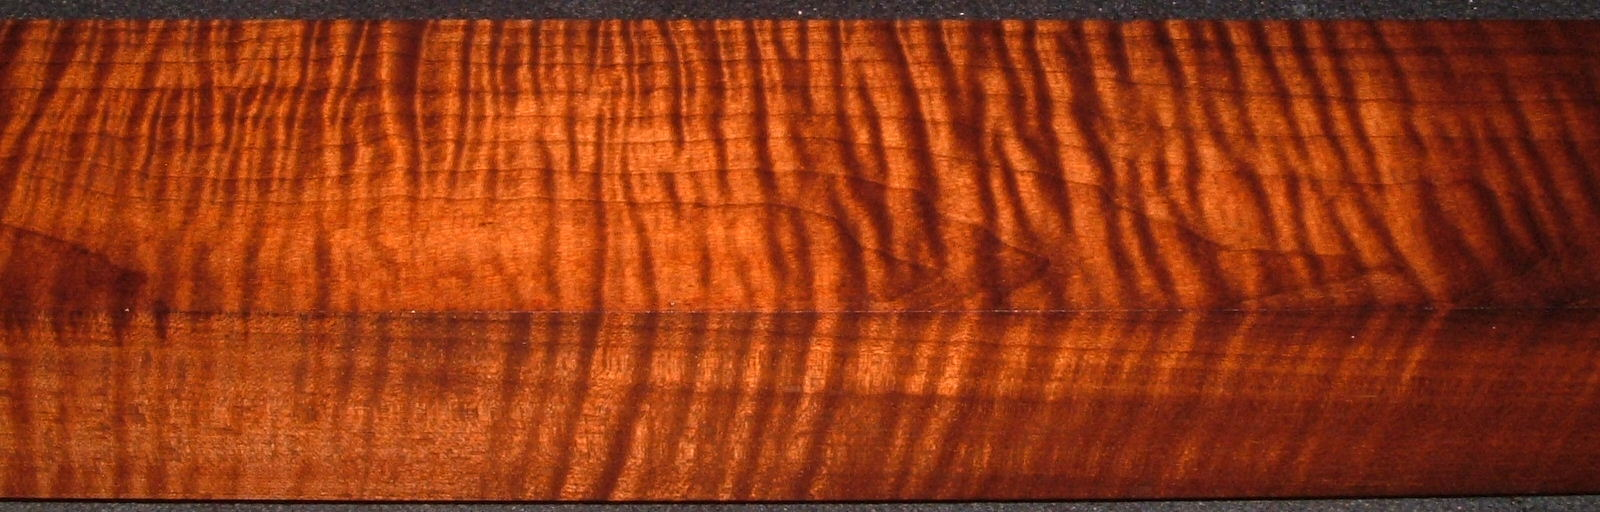 RTB-5, 2-7/16x3-3/4x48, Roasted Torrefied, Curly Tiger Maple Turning Block